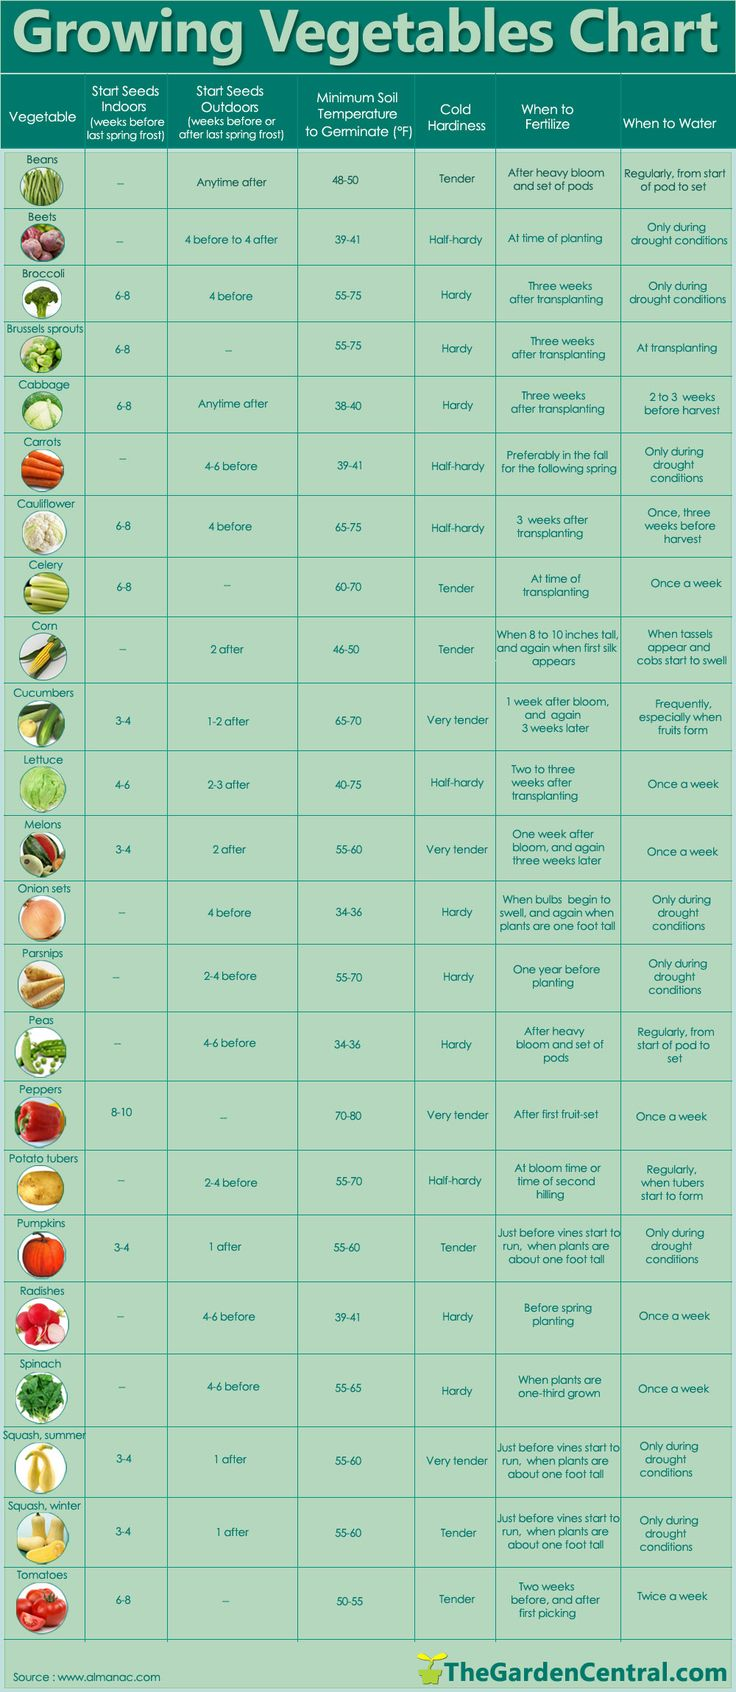 Here's a great chart from www.thegardencentral.com that'll give you a few tips for planting and growing your very own healthy vegetables. This is a great resource as knowing how and when to plant your crops is a crucial part of reaping a good harvest.